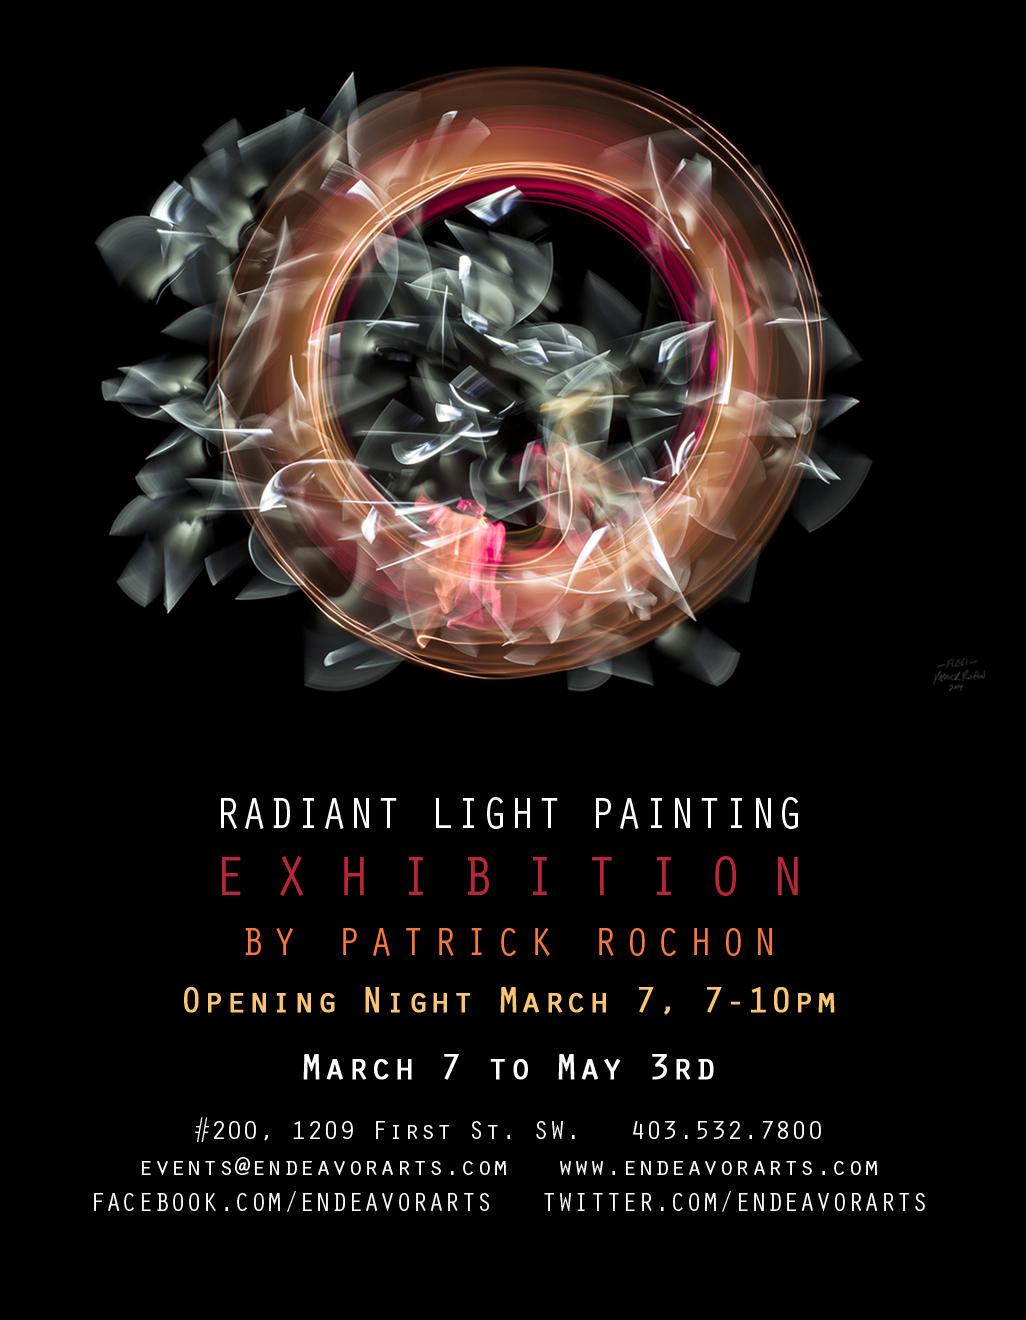 Radiant Light Painting Art Exhibition by Patrick Rochon.